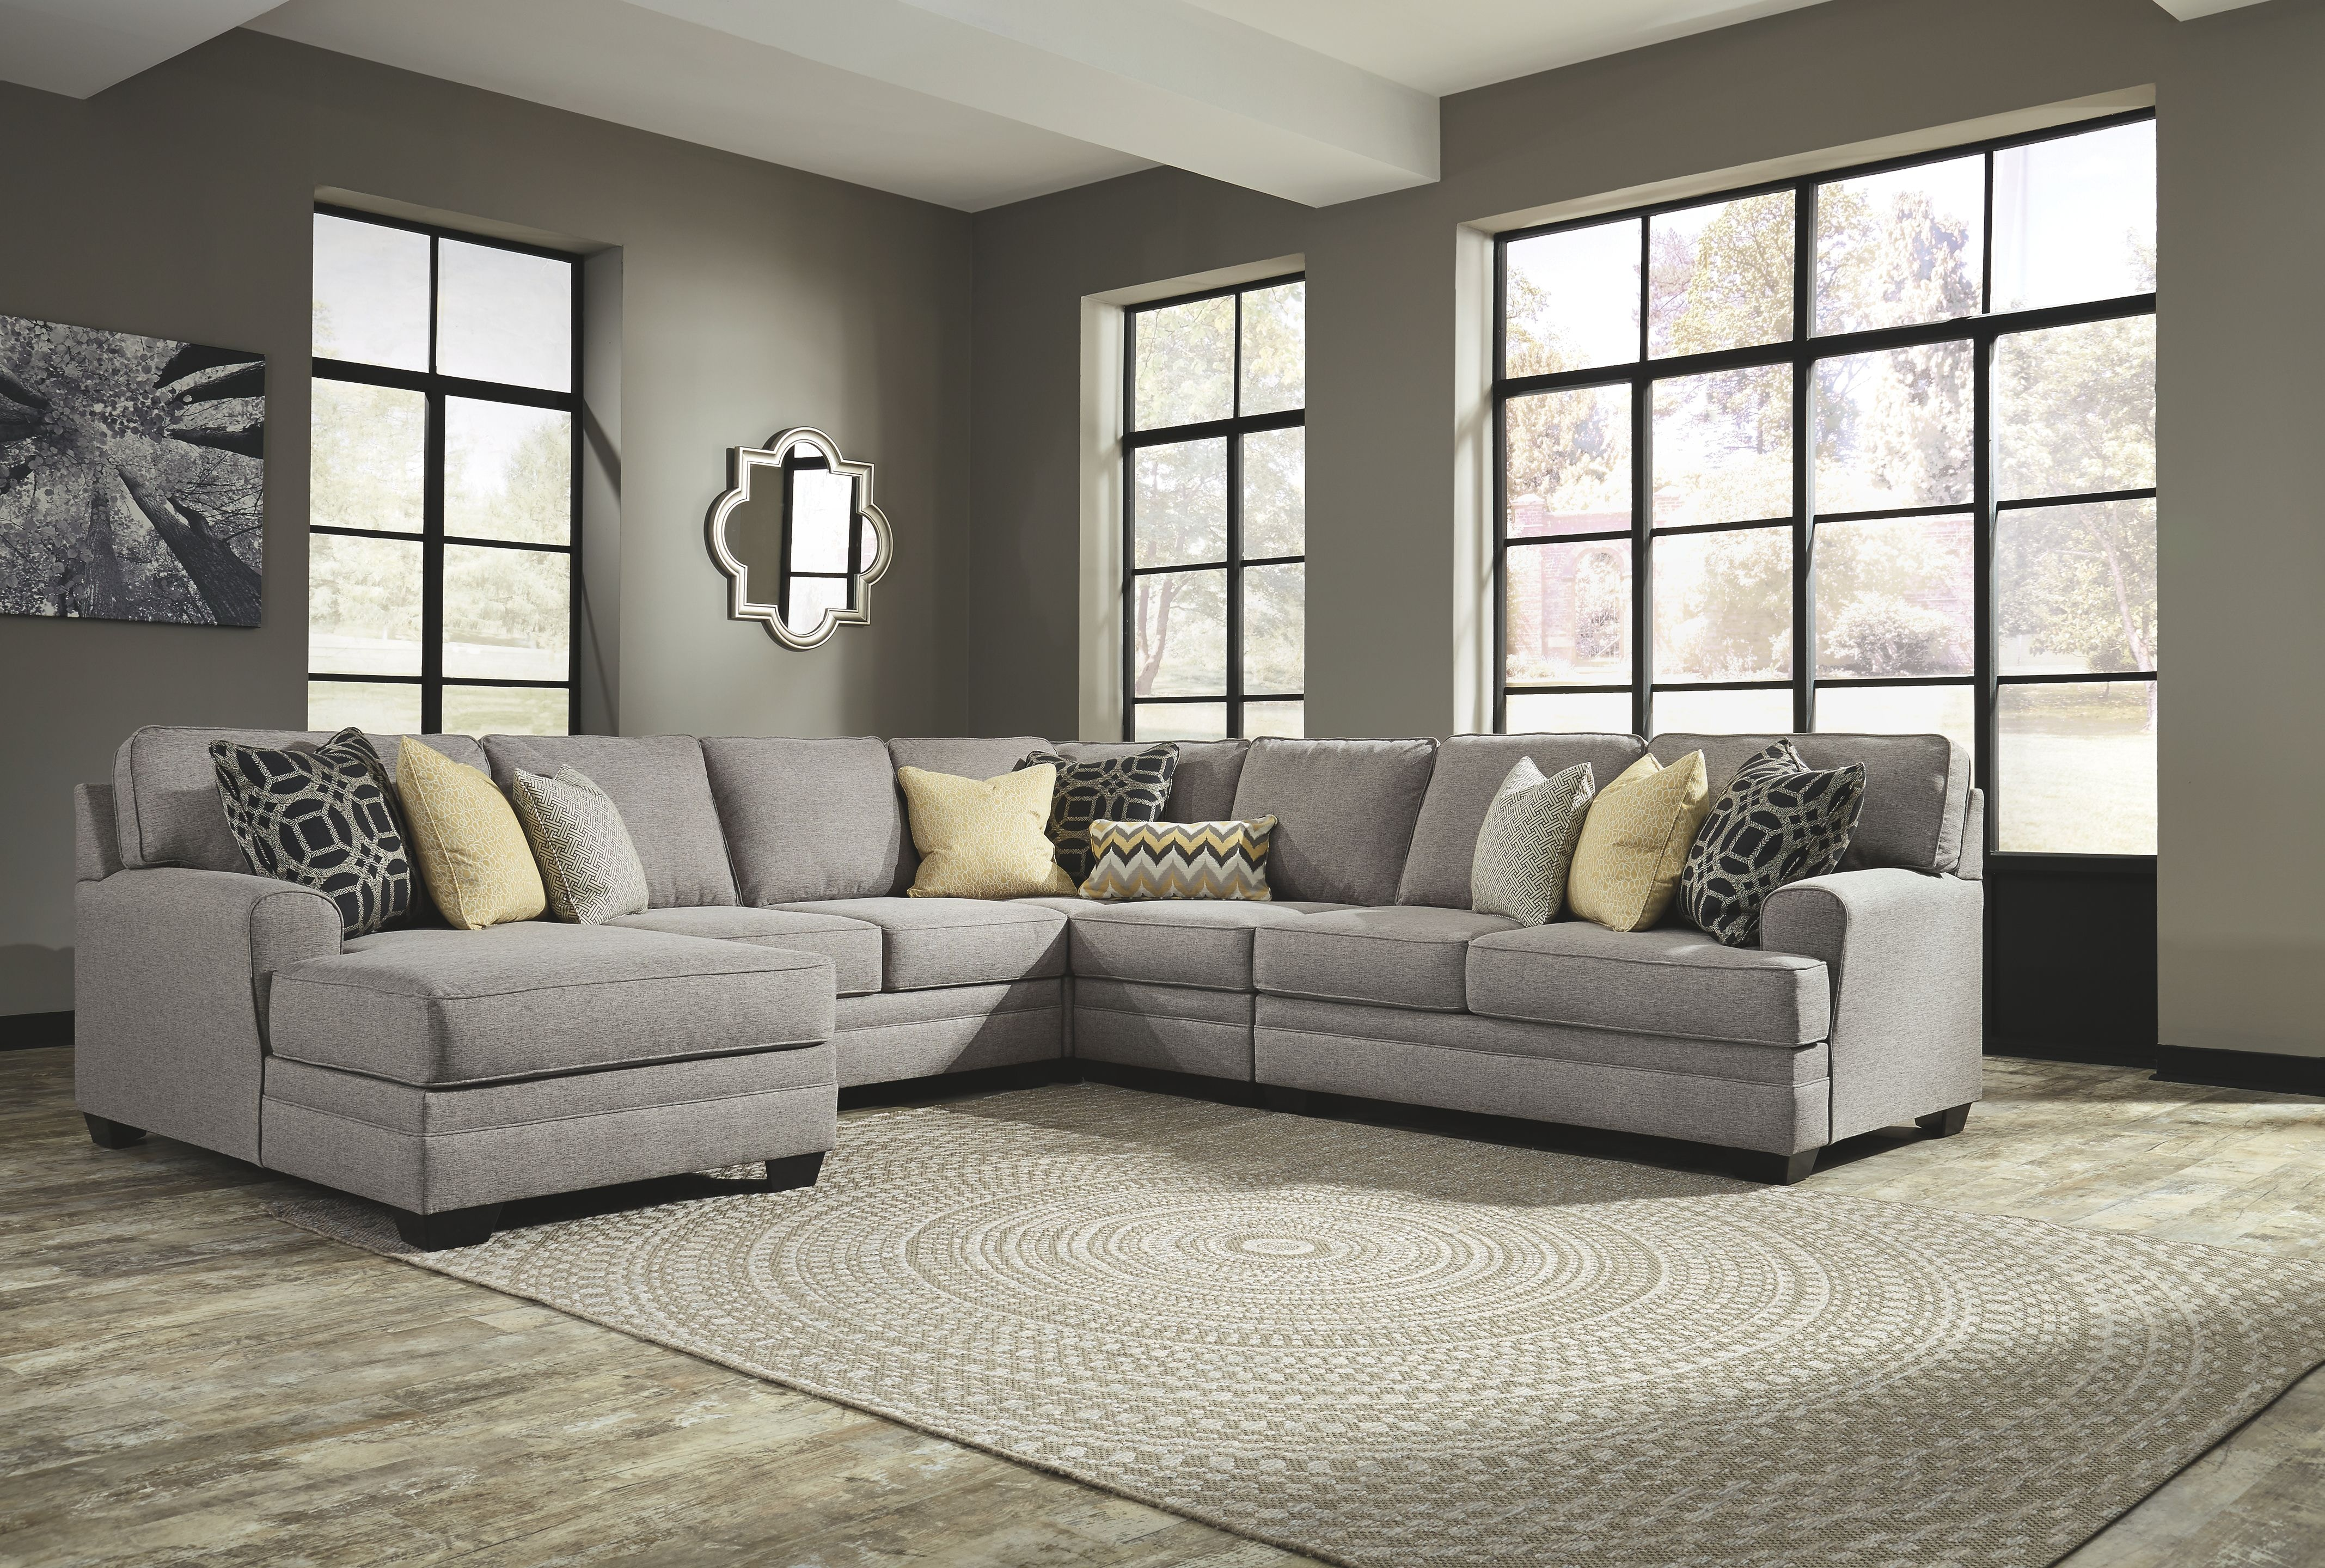 Signature Design By Ashley RAF Loveseat On Sale At Elgin Furniture Stores  In Euclid, Cleveland Heights And North Randall